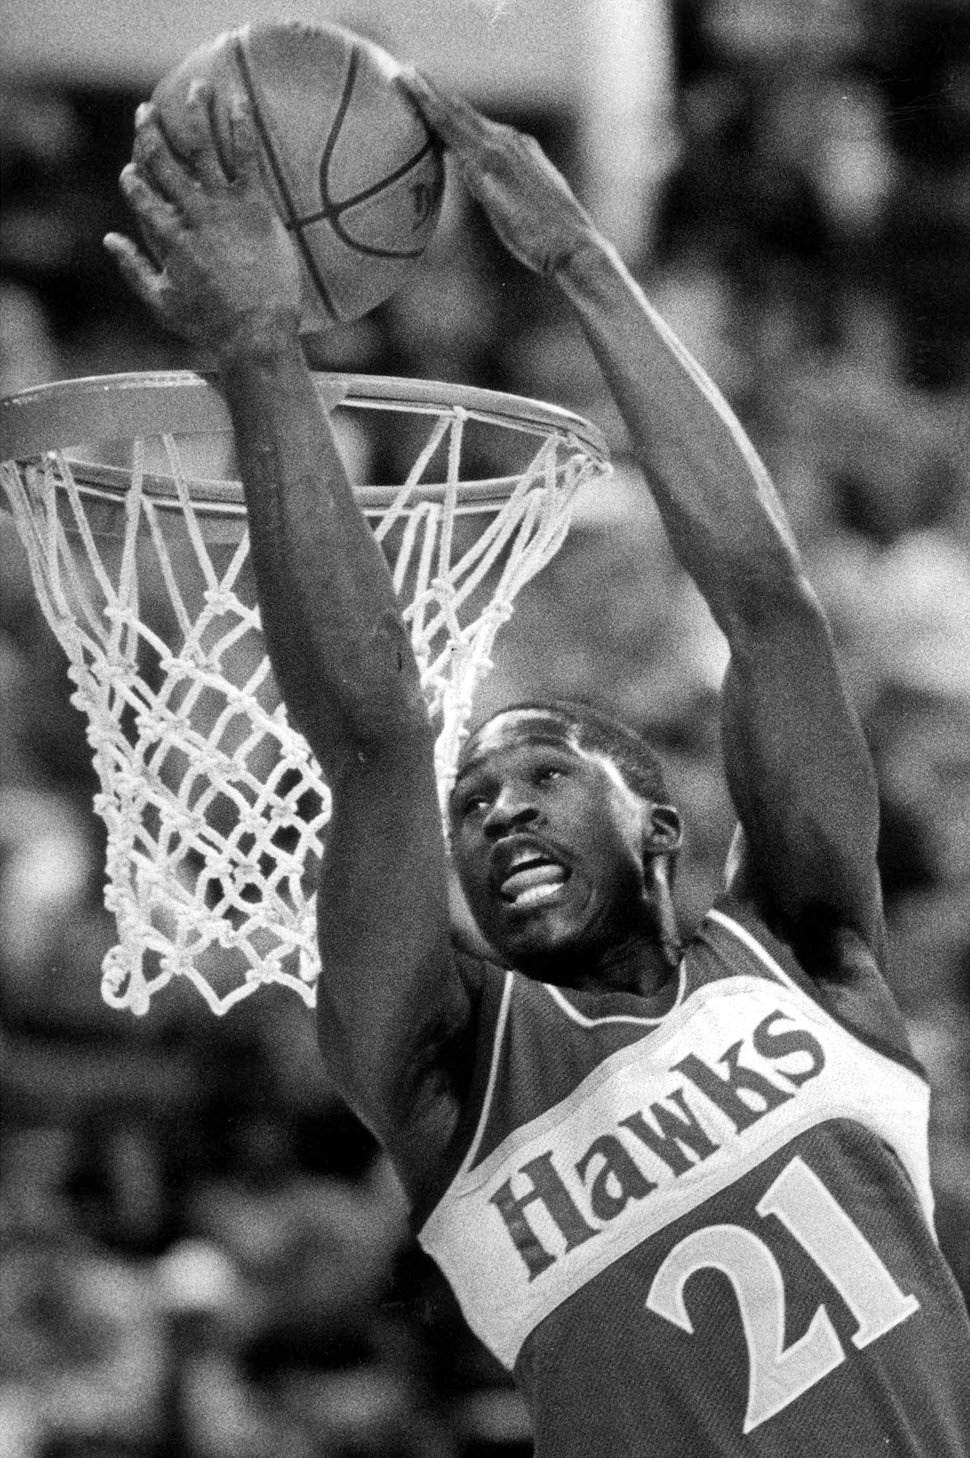 FILE - In this Feb. 9, 1985, file photo, Atlanta Hawks forward Dominique Wilkins dunks the ball over his head during the NBA Slam Dunk Contest in Indianapolis. Wilkins, an NBA Hall of Famer nicknamed The Human Highlight Film for his thunderous, acrobatic dunks during the 1980s and '90s, believes social media have amplified athletes' voices, and the Twitter-less past did not offer sports stars the soap boxes they have now. (AP Photo/Doug Atkins, File)